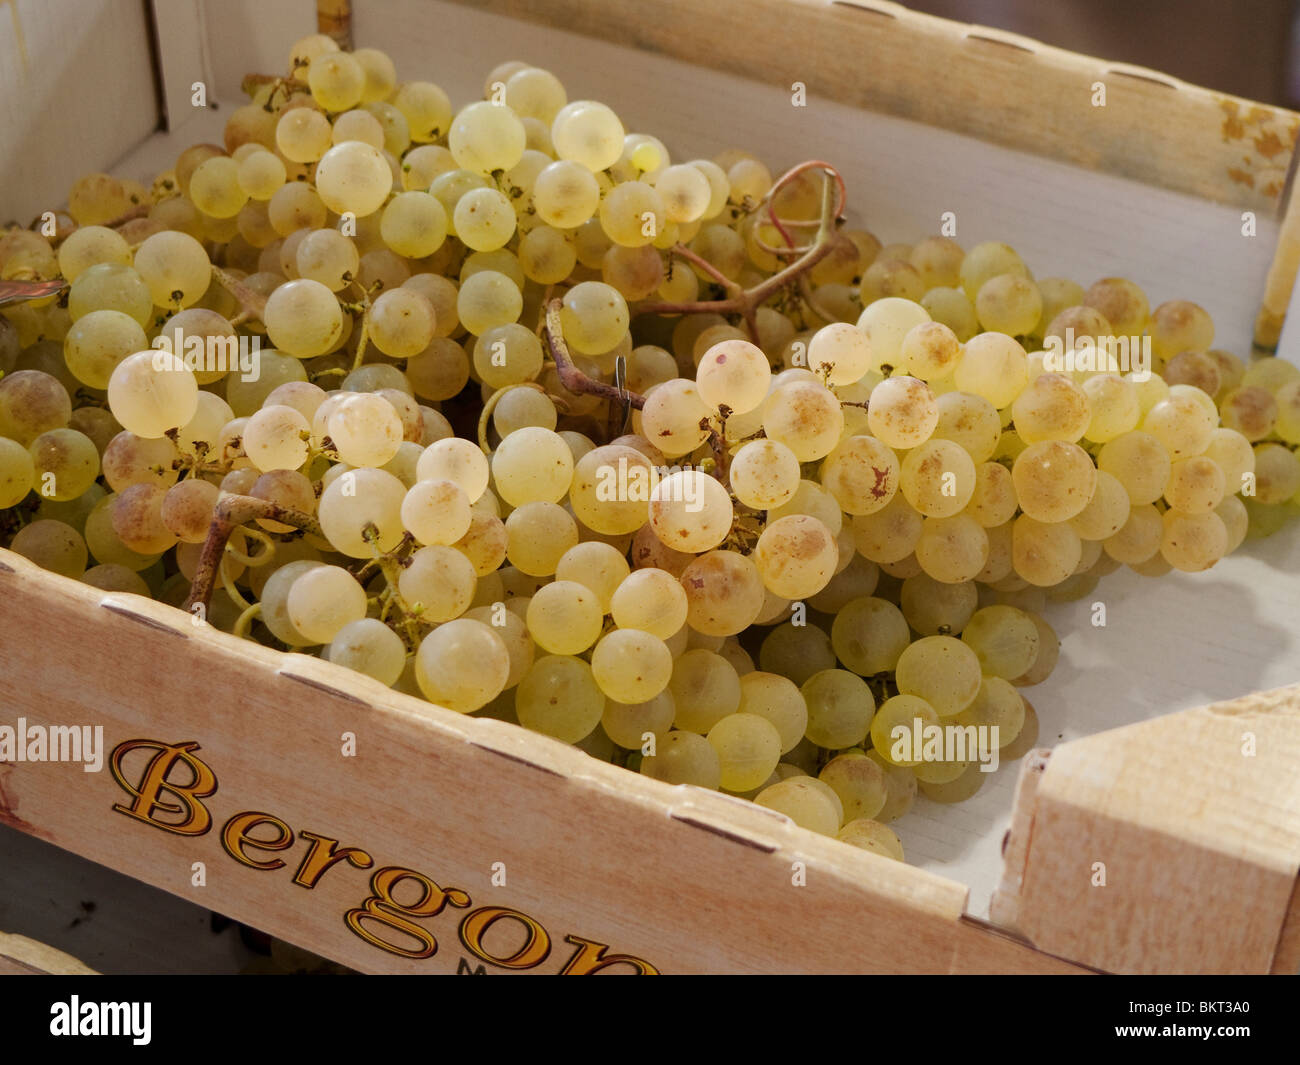 White grapes in wood box for sale. - Stock Image